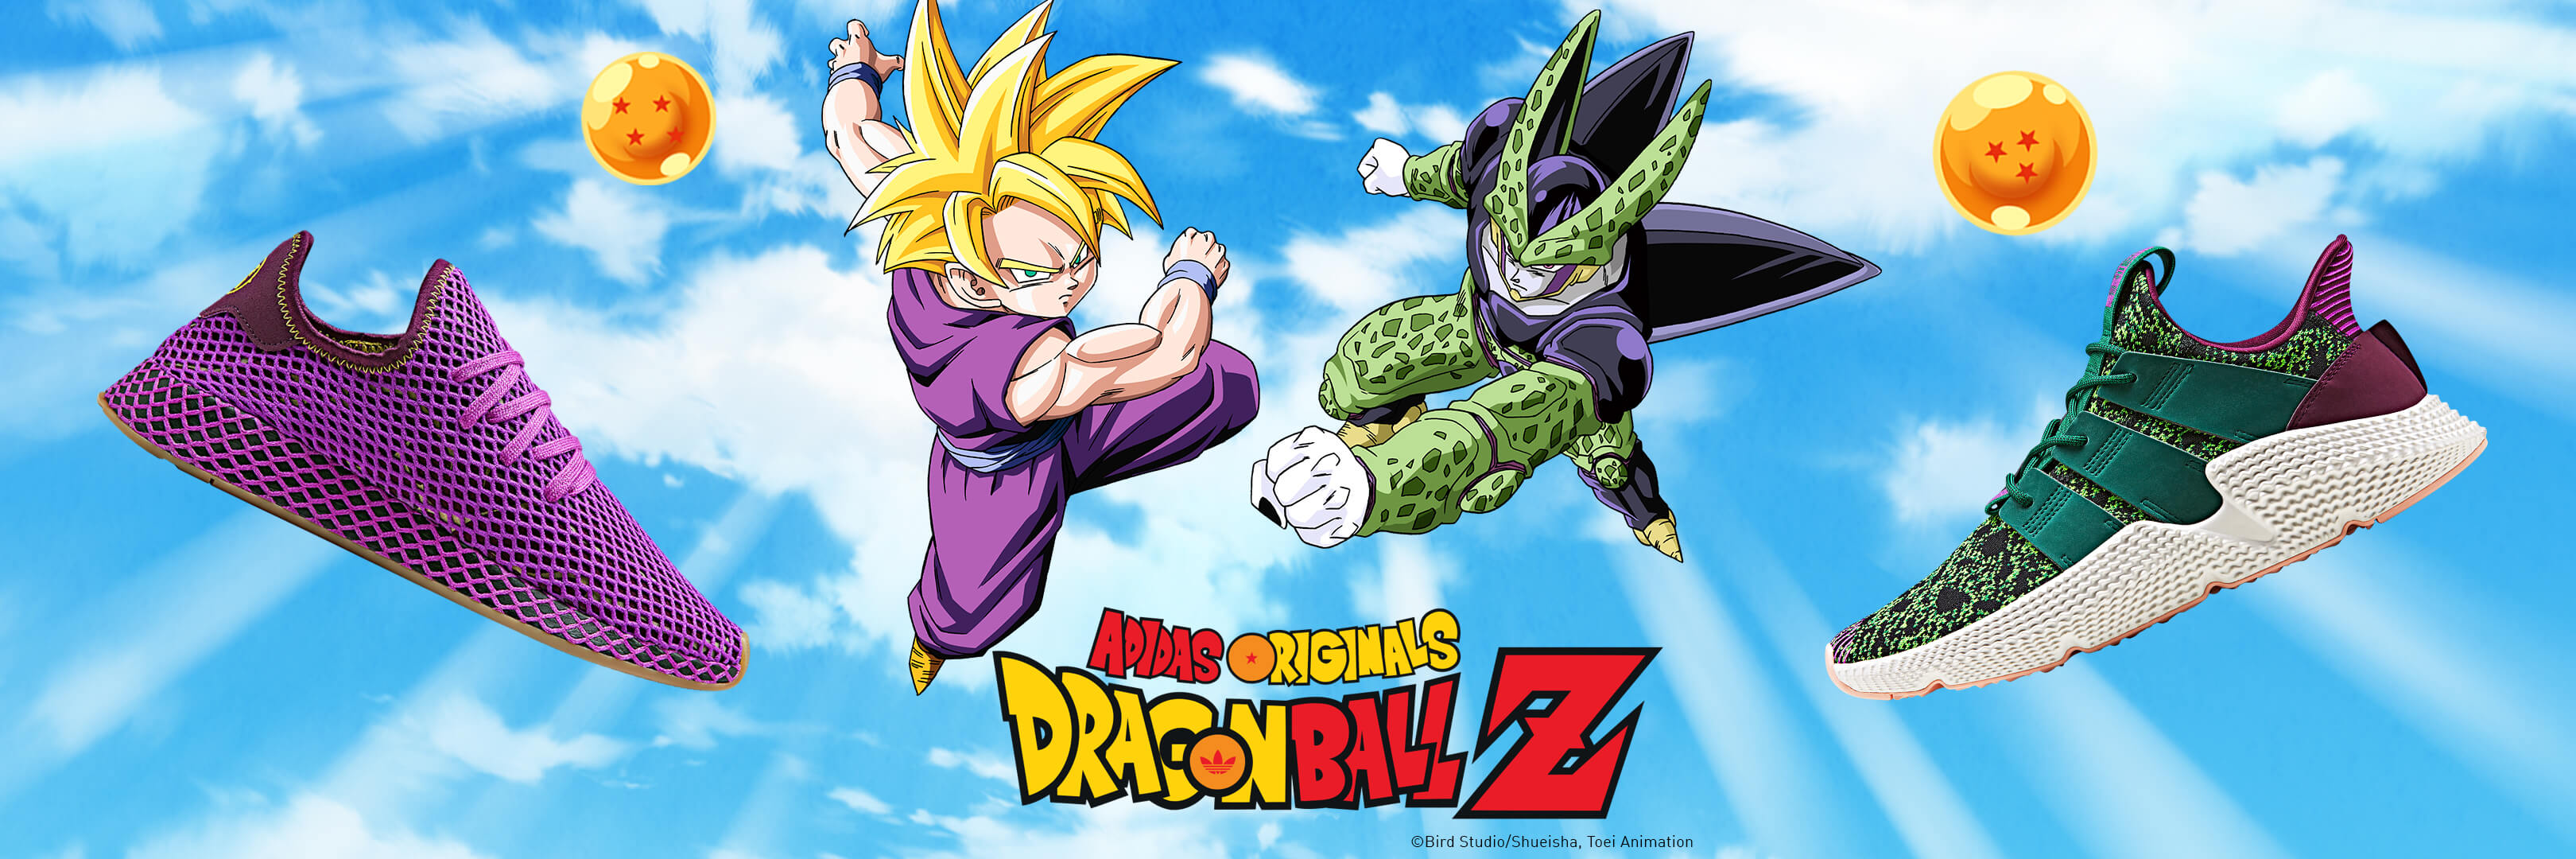 fd733a17a6b Gohan   Cell adidas Originals by Dragon Ball Z to be Released on ...